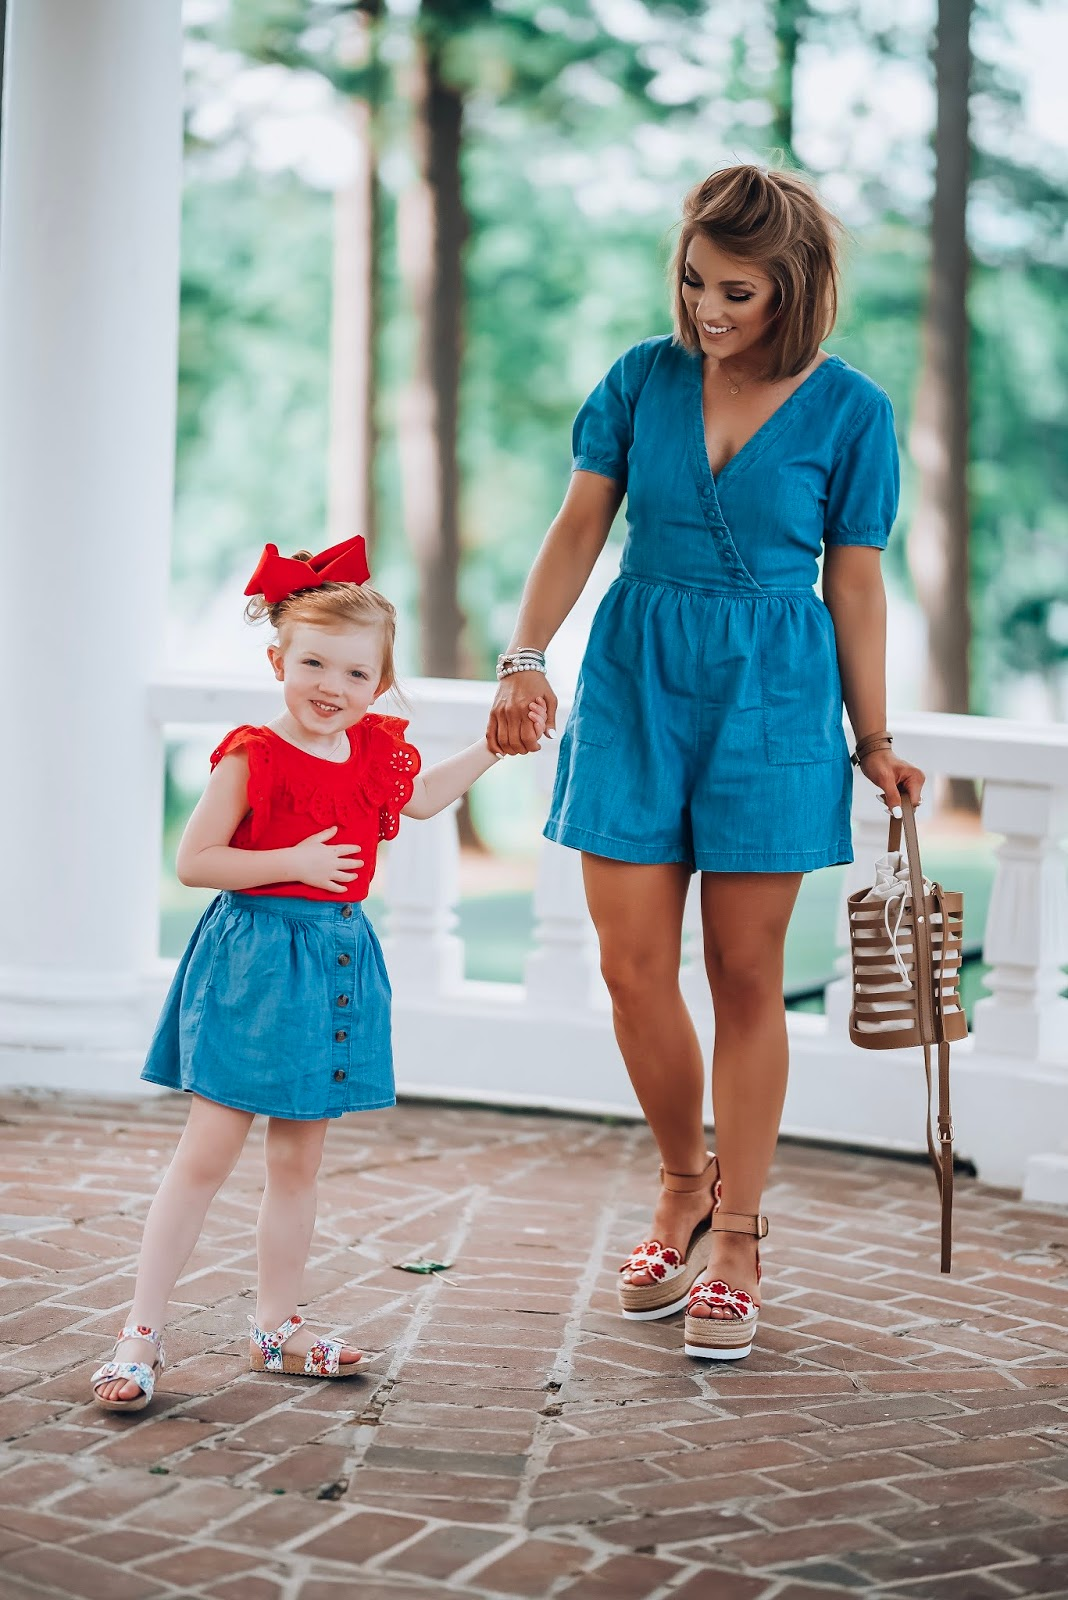 The Best Way to Wear Chambray: Madewell Chambray Button Detail Romper Paired With Red Accessories - Something Delightful Blog